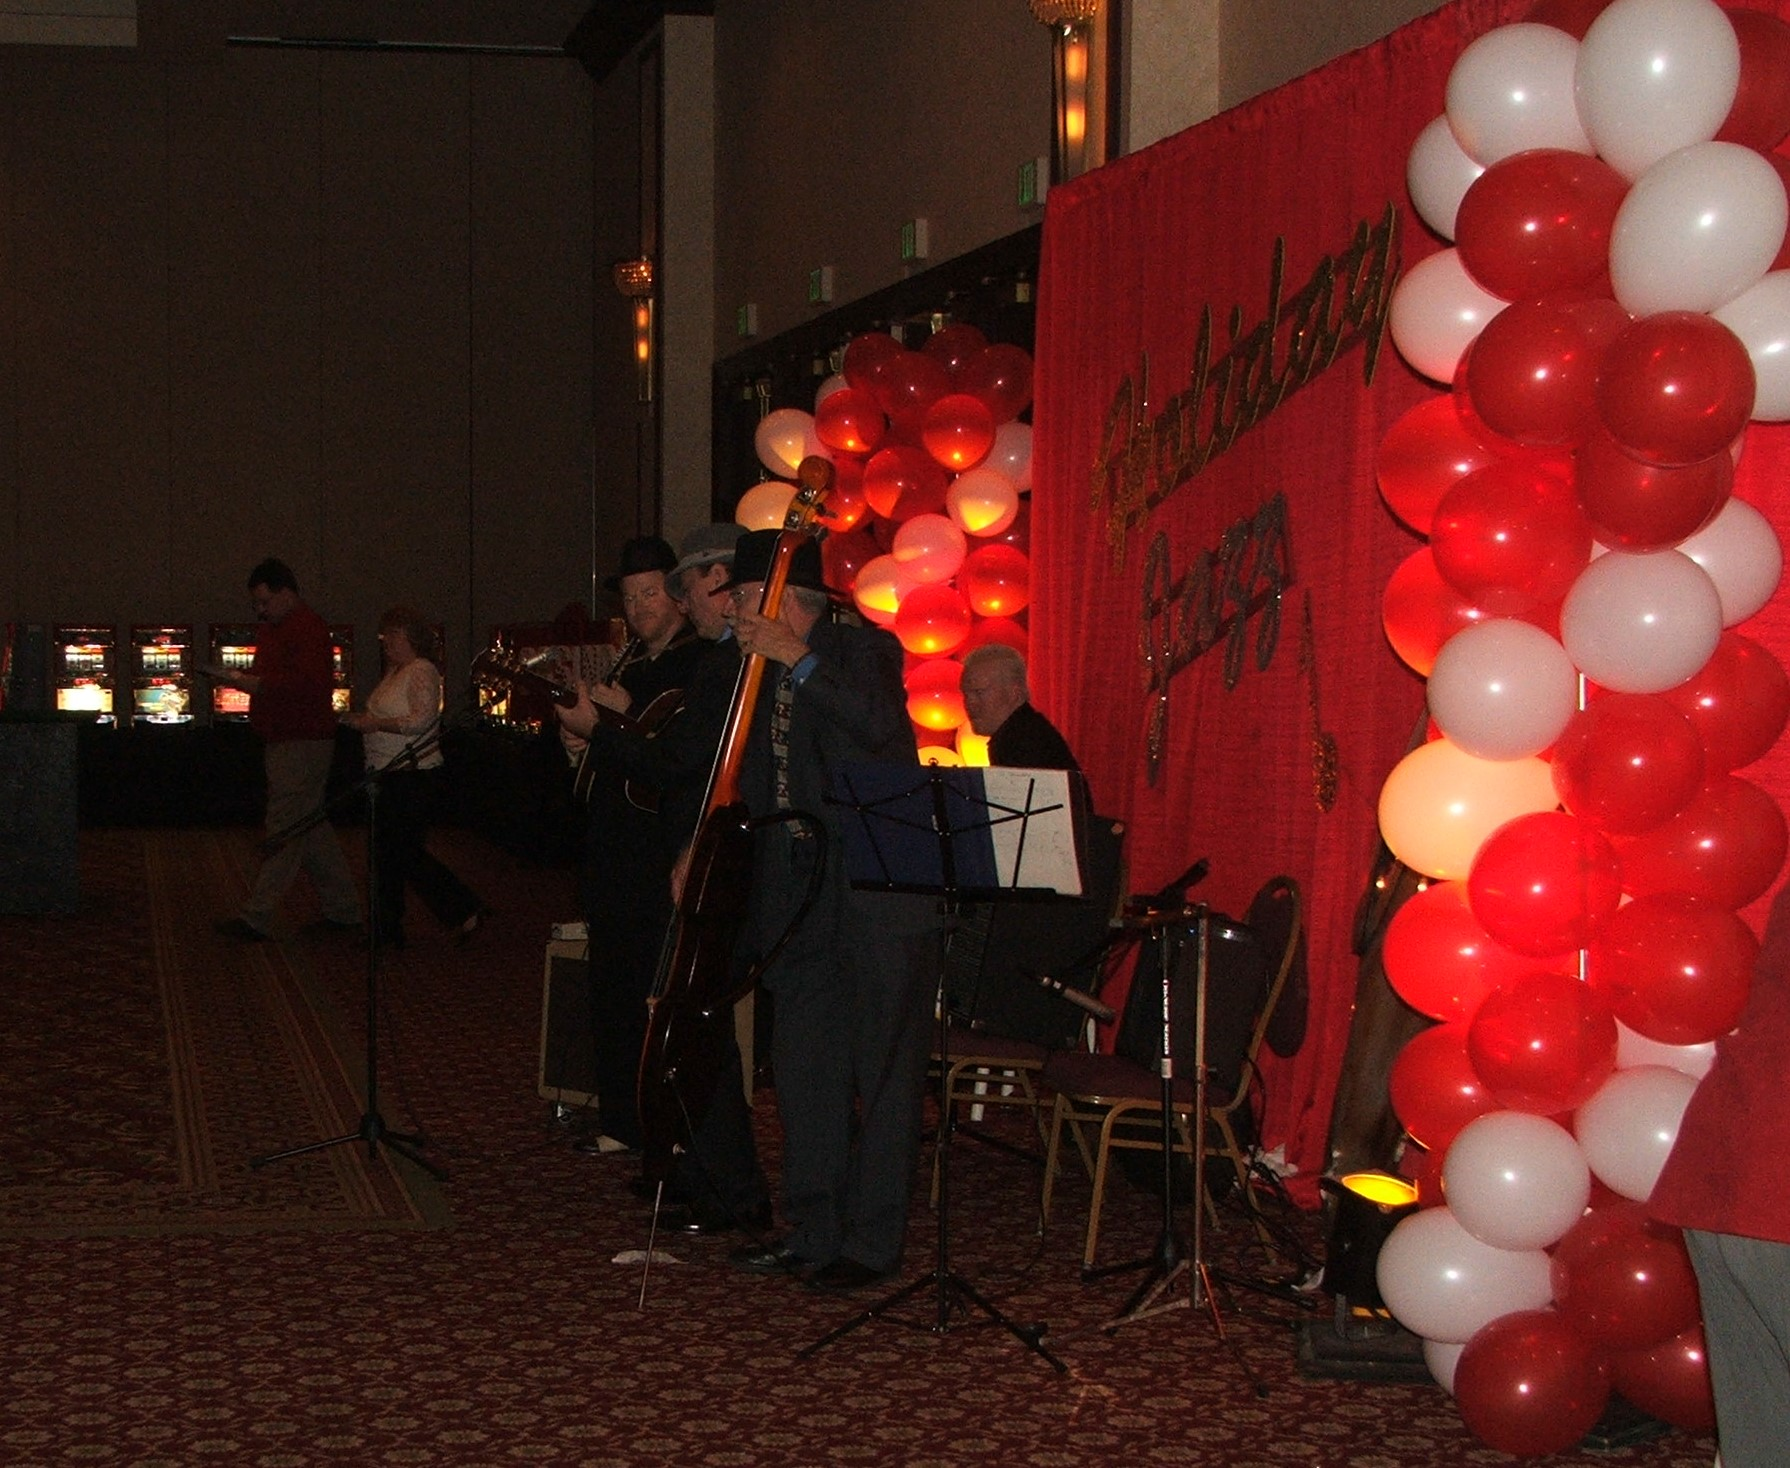 Holiday Jazz Trio with Balloon Decor